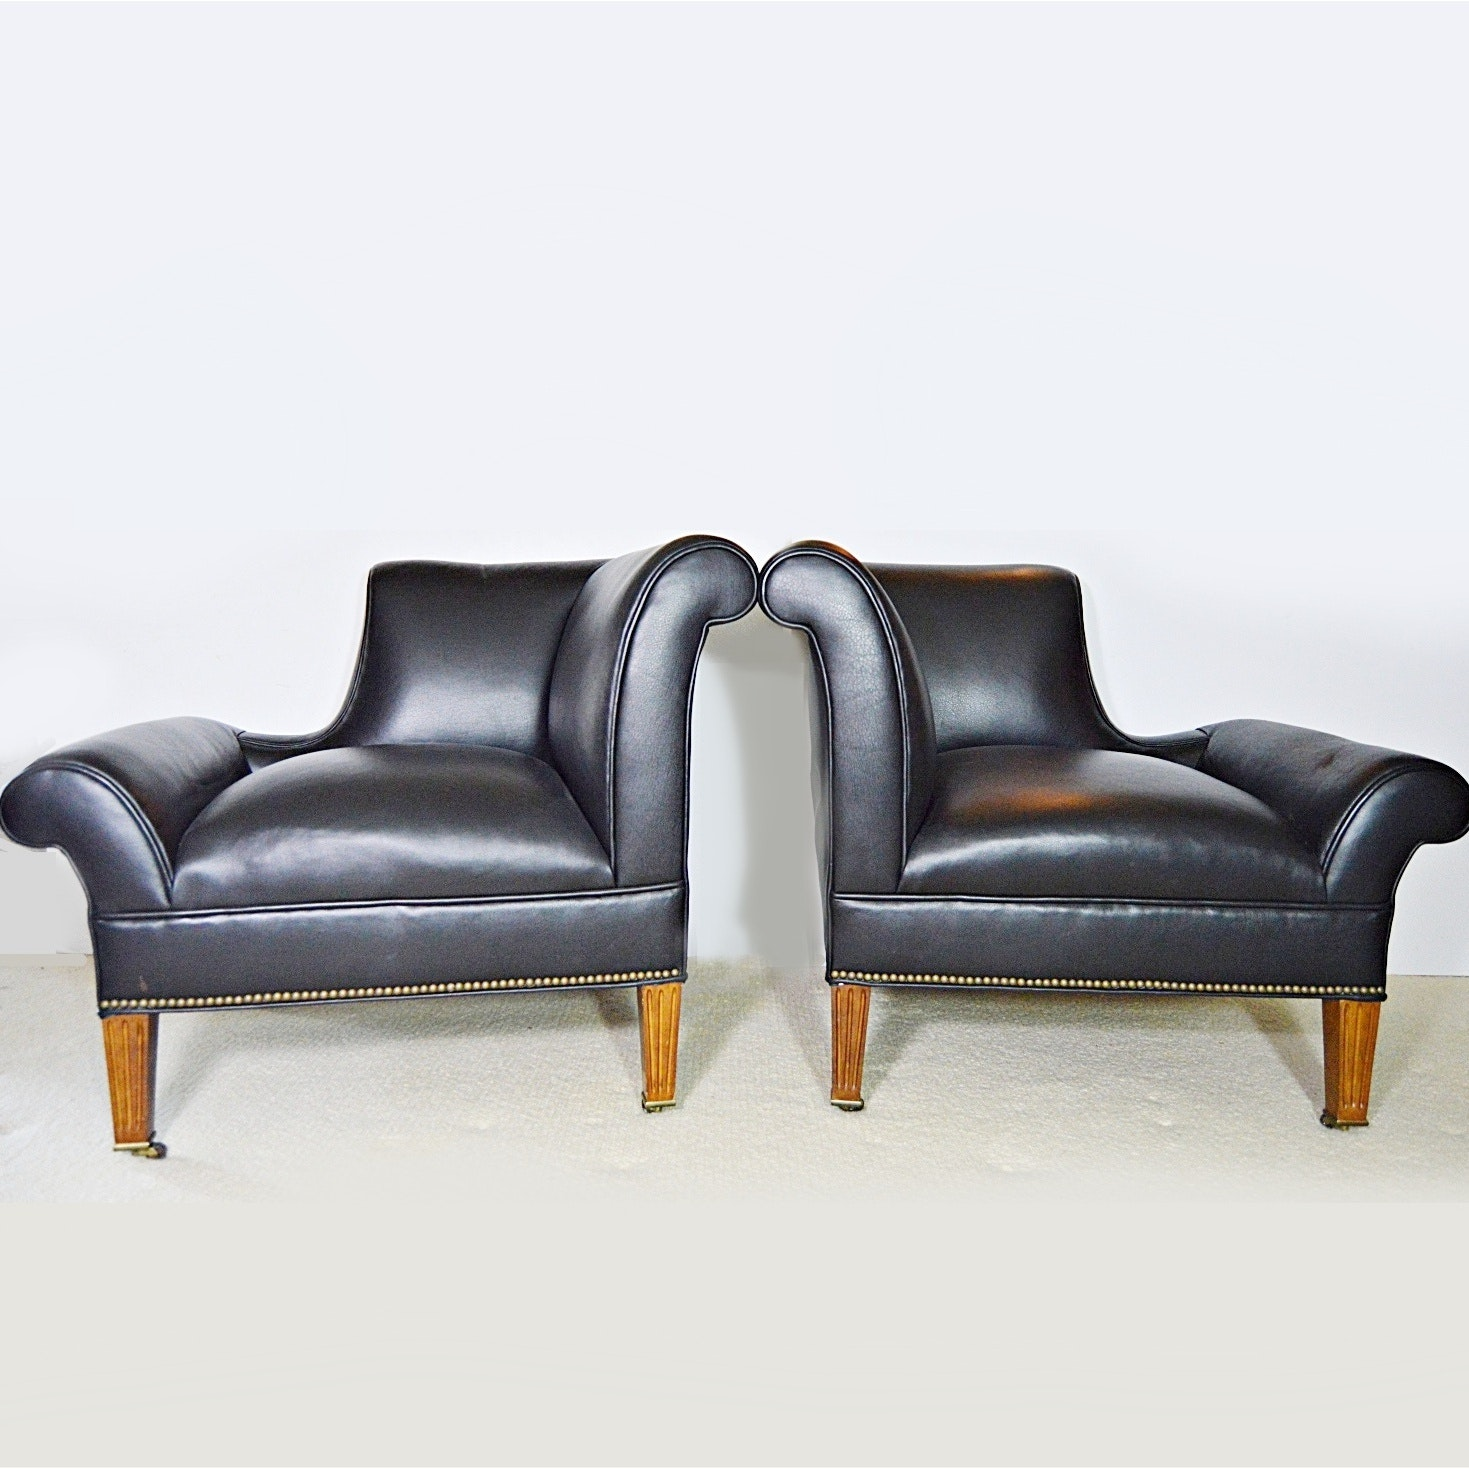 Pair of Equestrian Right and Left Facing Armchairs